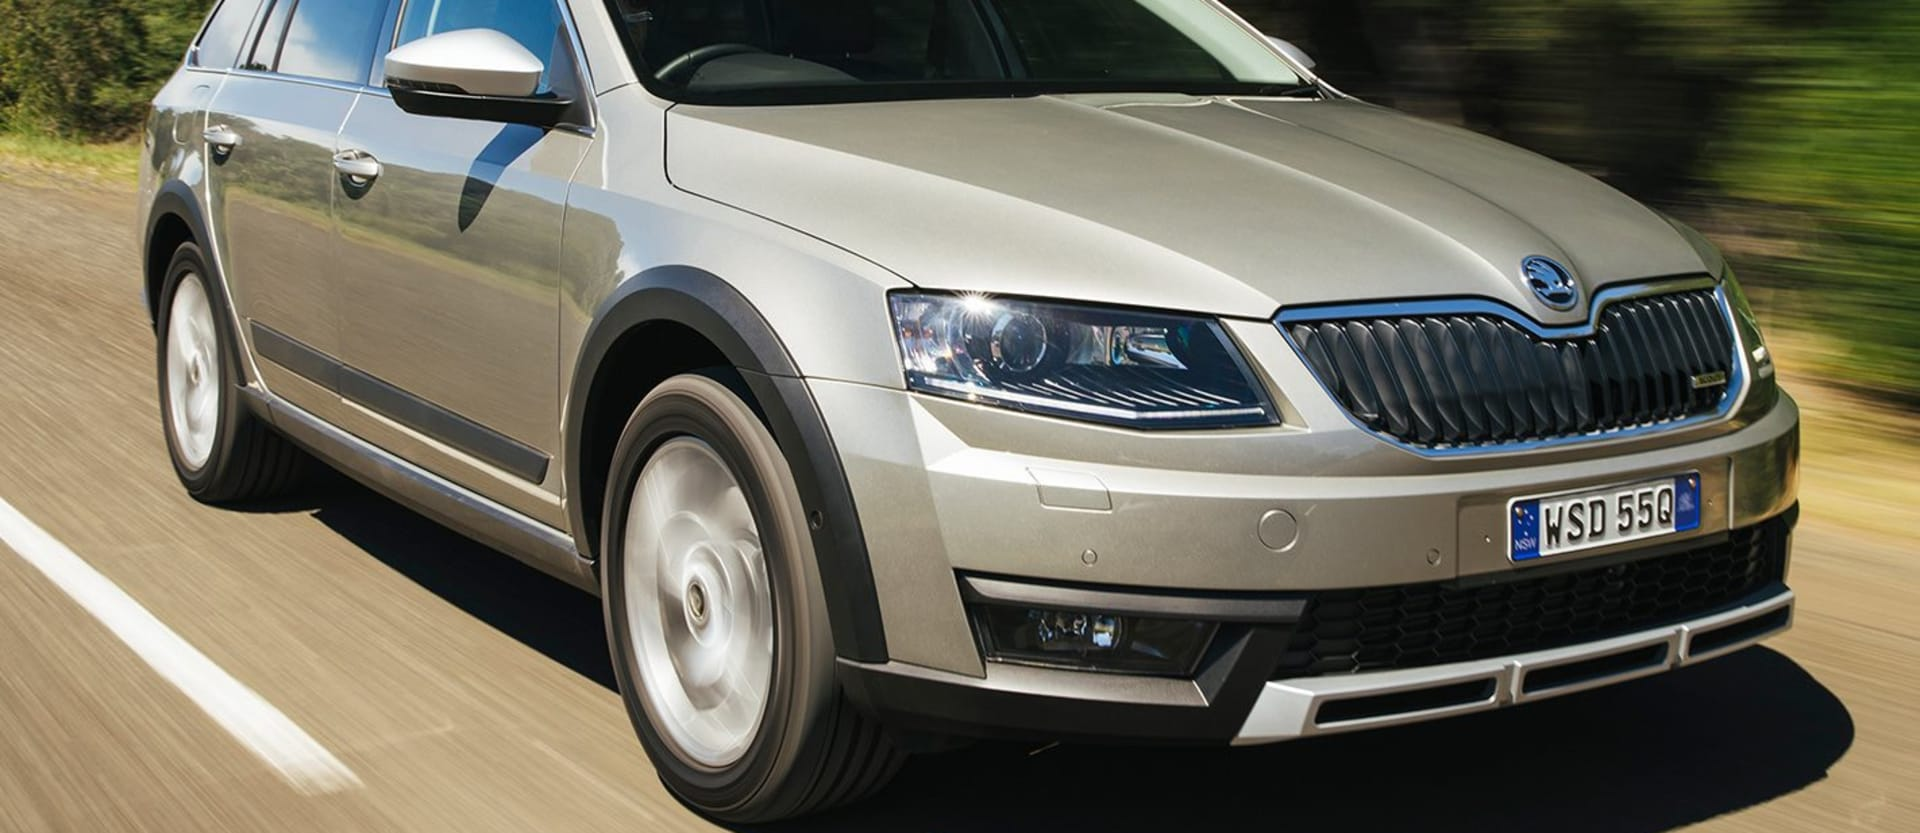 WC Skoda Octavia Scout Front Side Driving On Road Jpg